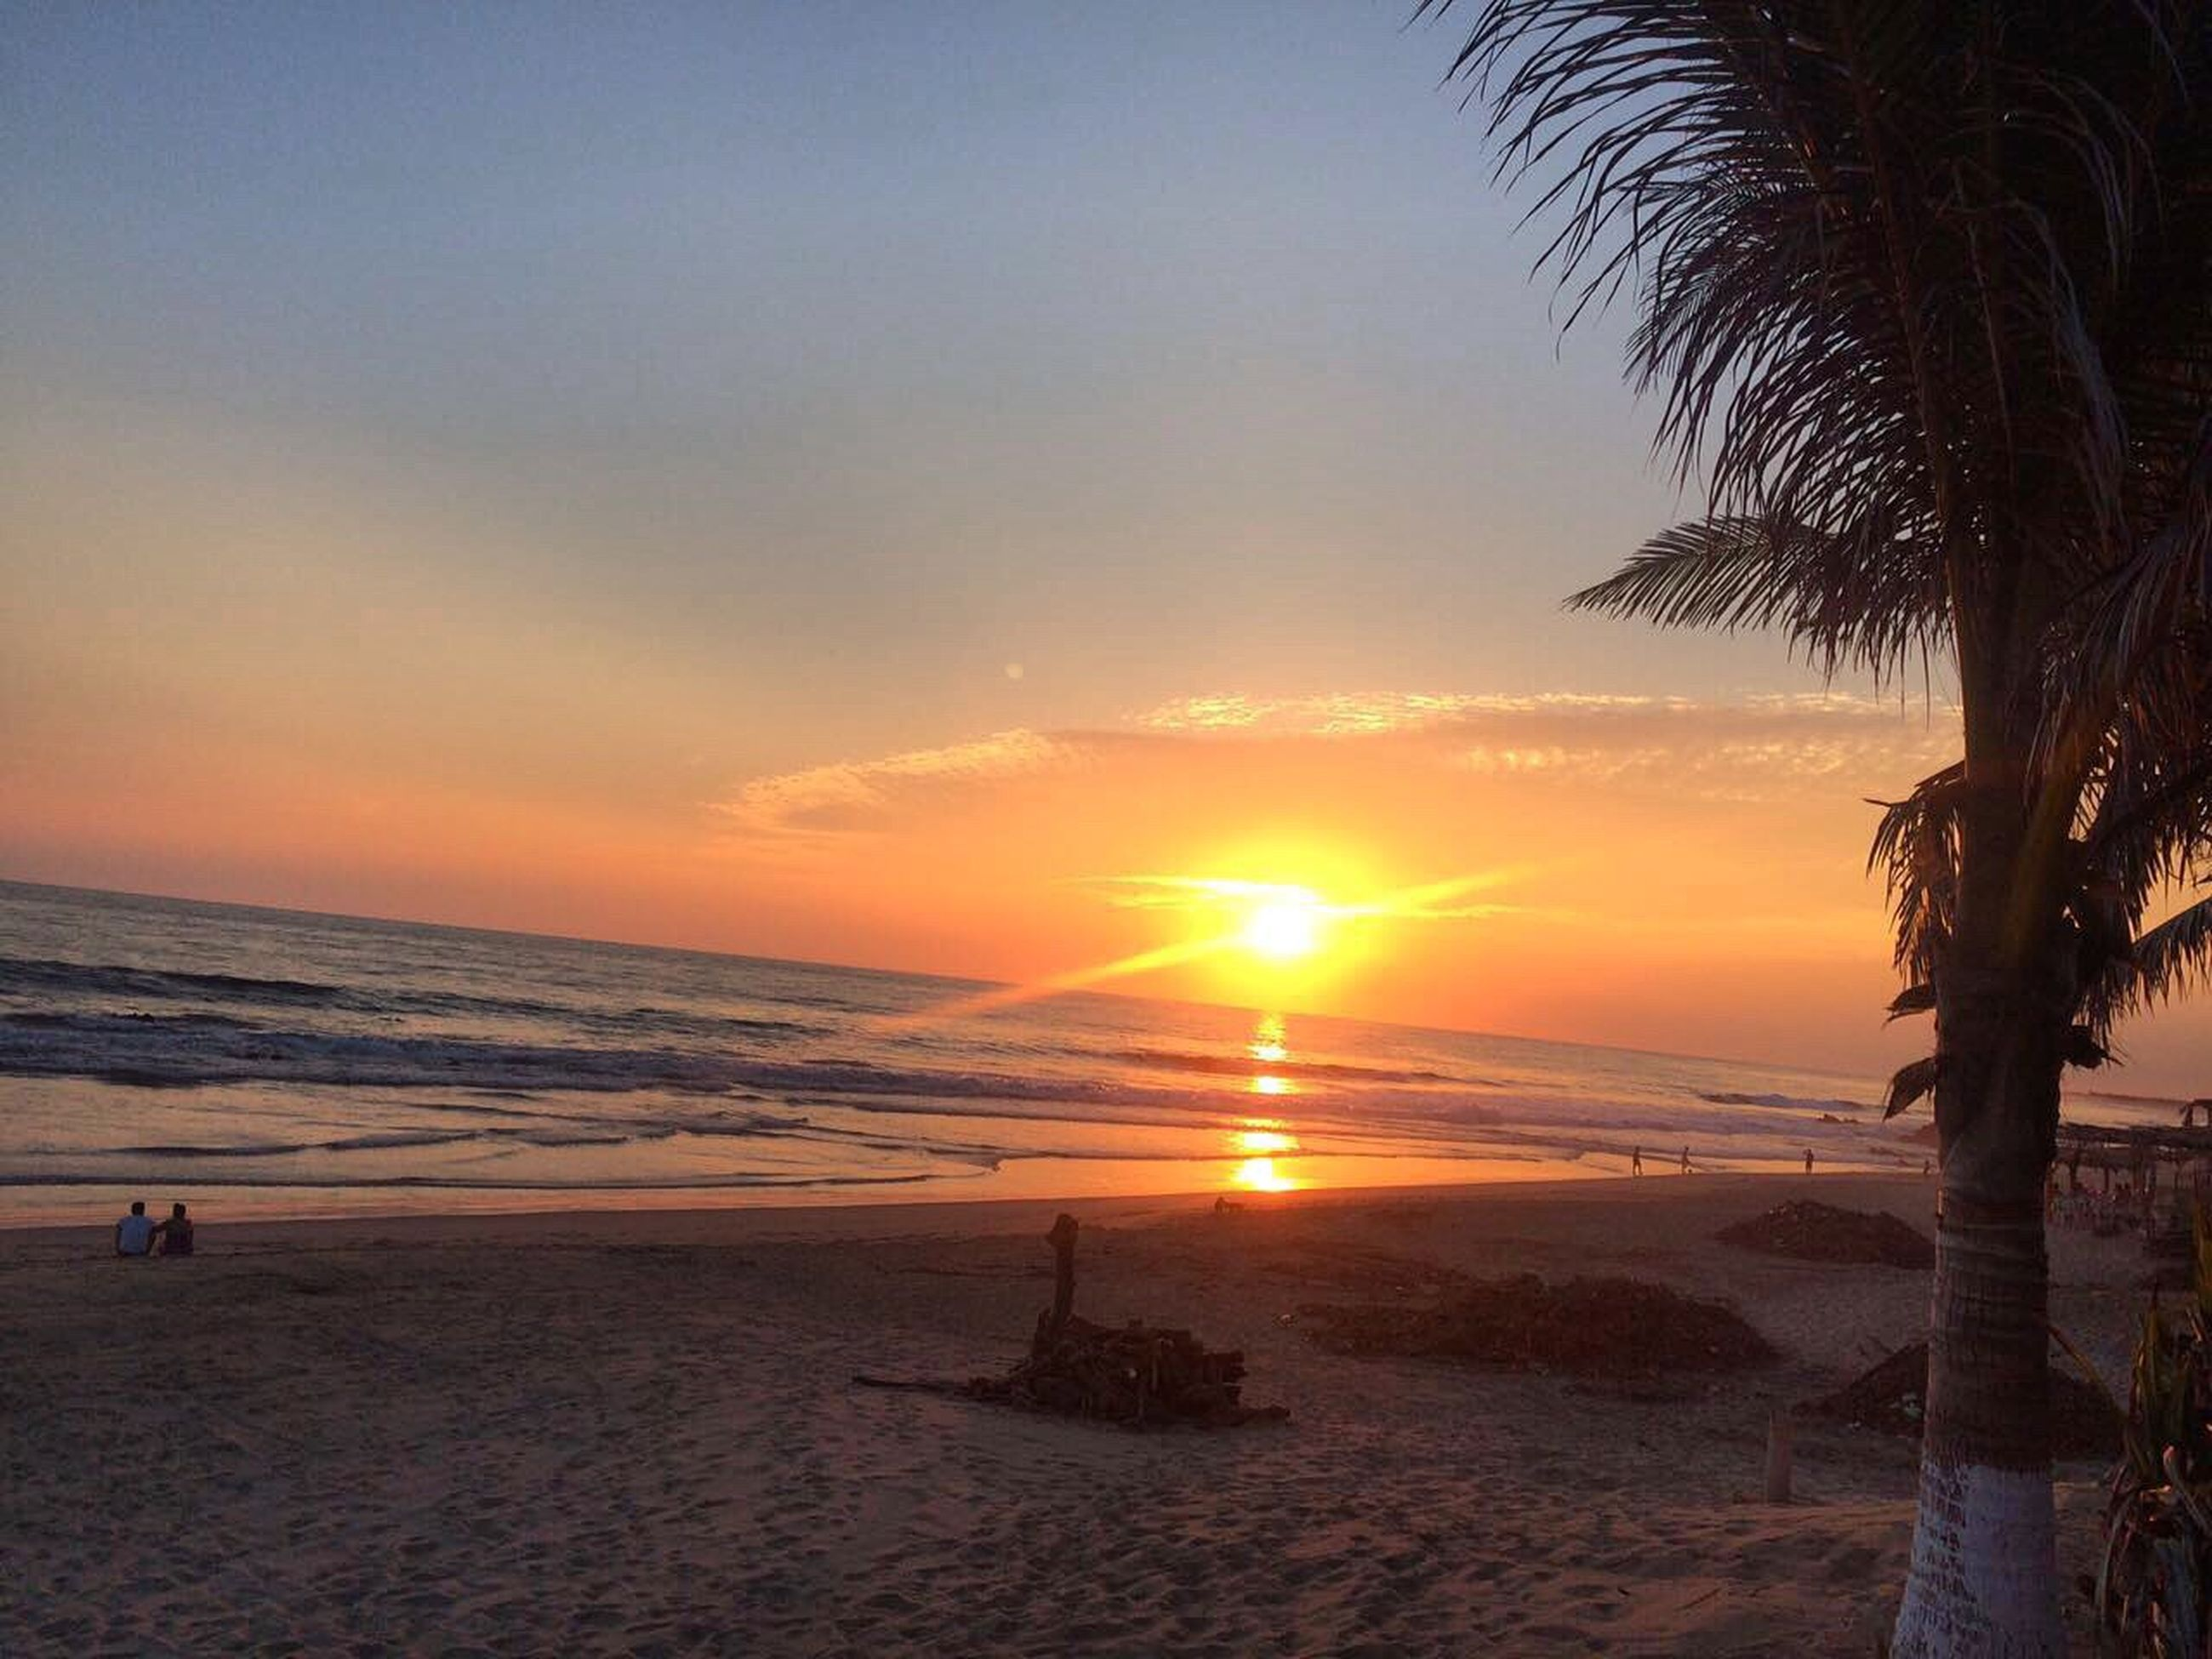 sea, beach, sunset, horizon over water, water, shore, sun, scenics, tranquil scene, beauty in nature, tranquility, sand, sky, idyllic, nature, orange color, palm tree, sunlight, incidental people, vacations